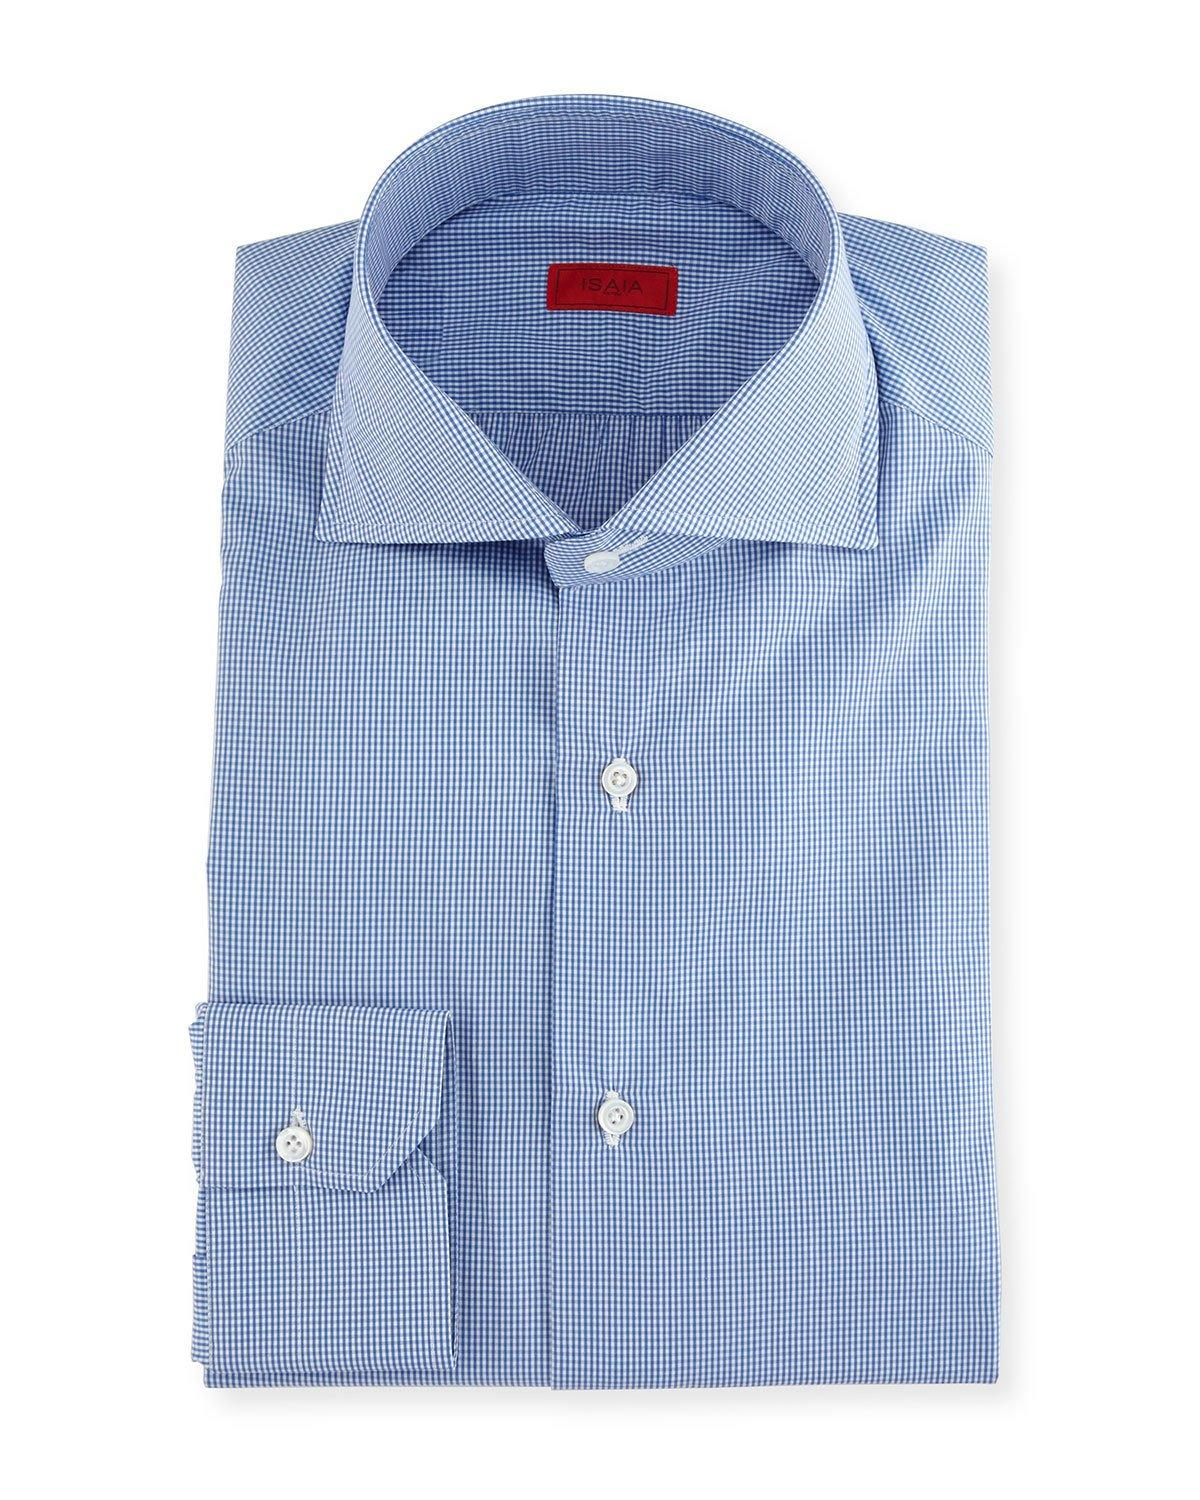 Isaia slim fit gingham check dress shirt in blue for men for Slim fit gingham check shirt